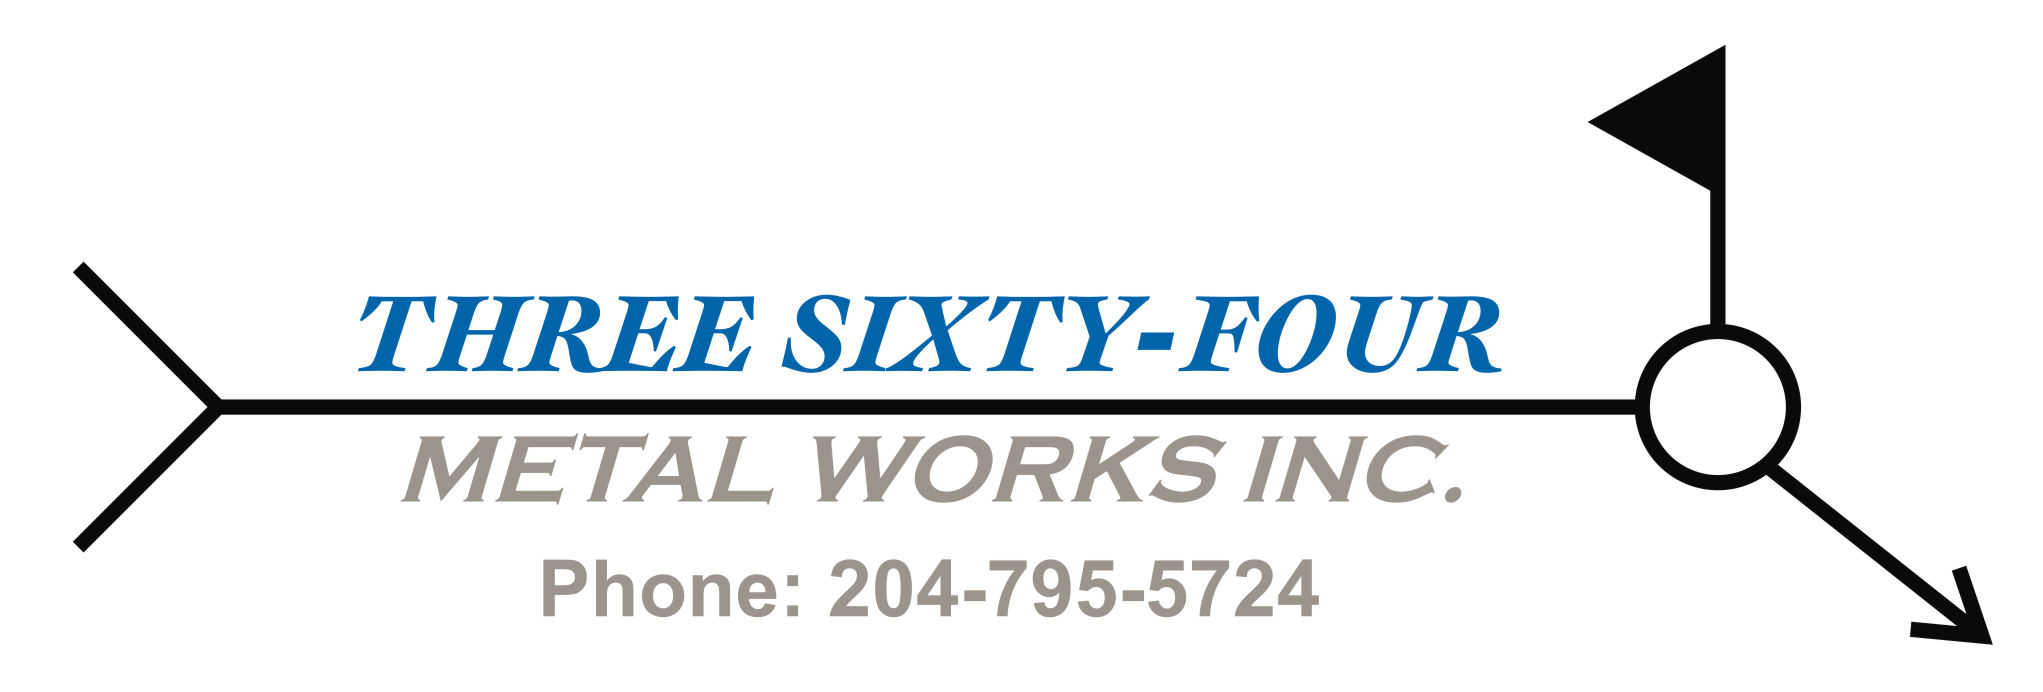 Three Sixty-Four Metal Works Inc.